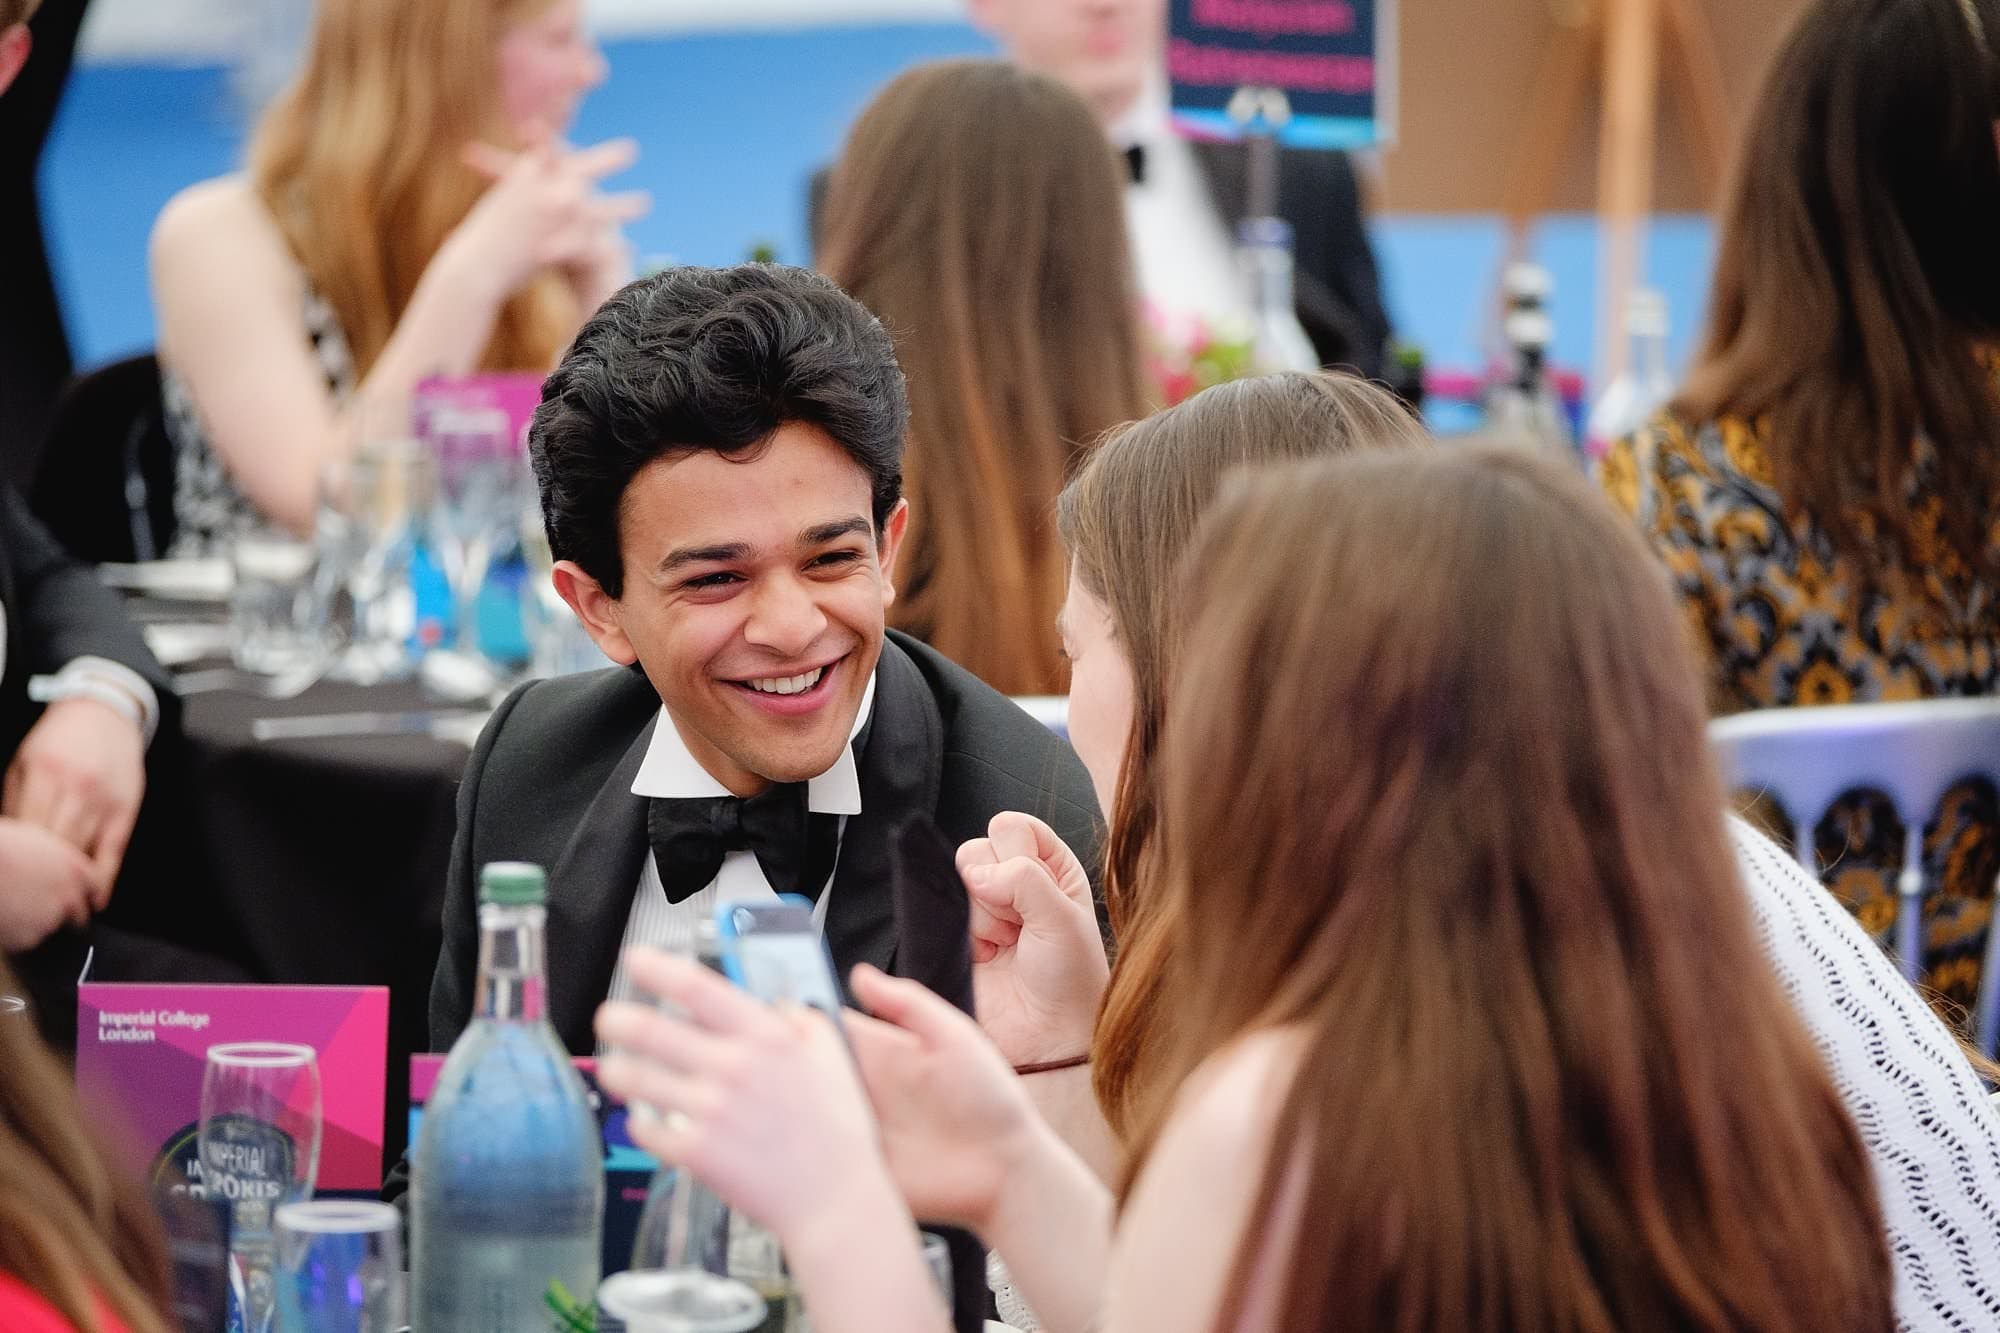 event photographer london icl 2017 012 - Imperial College London Sports Awards 2017